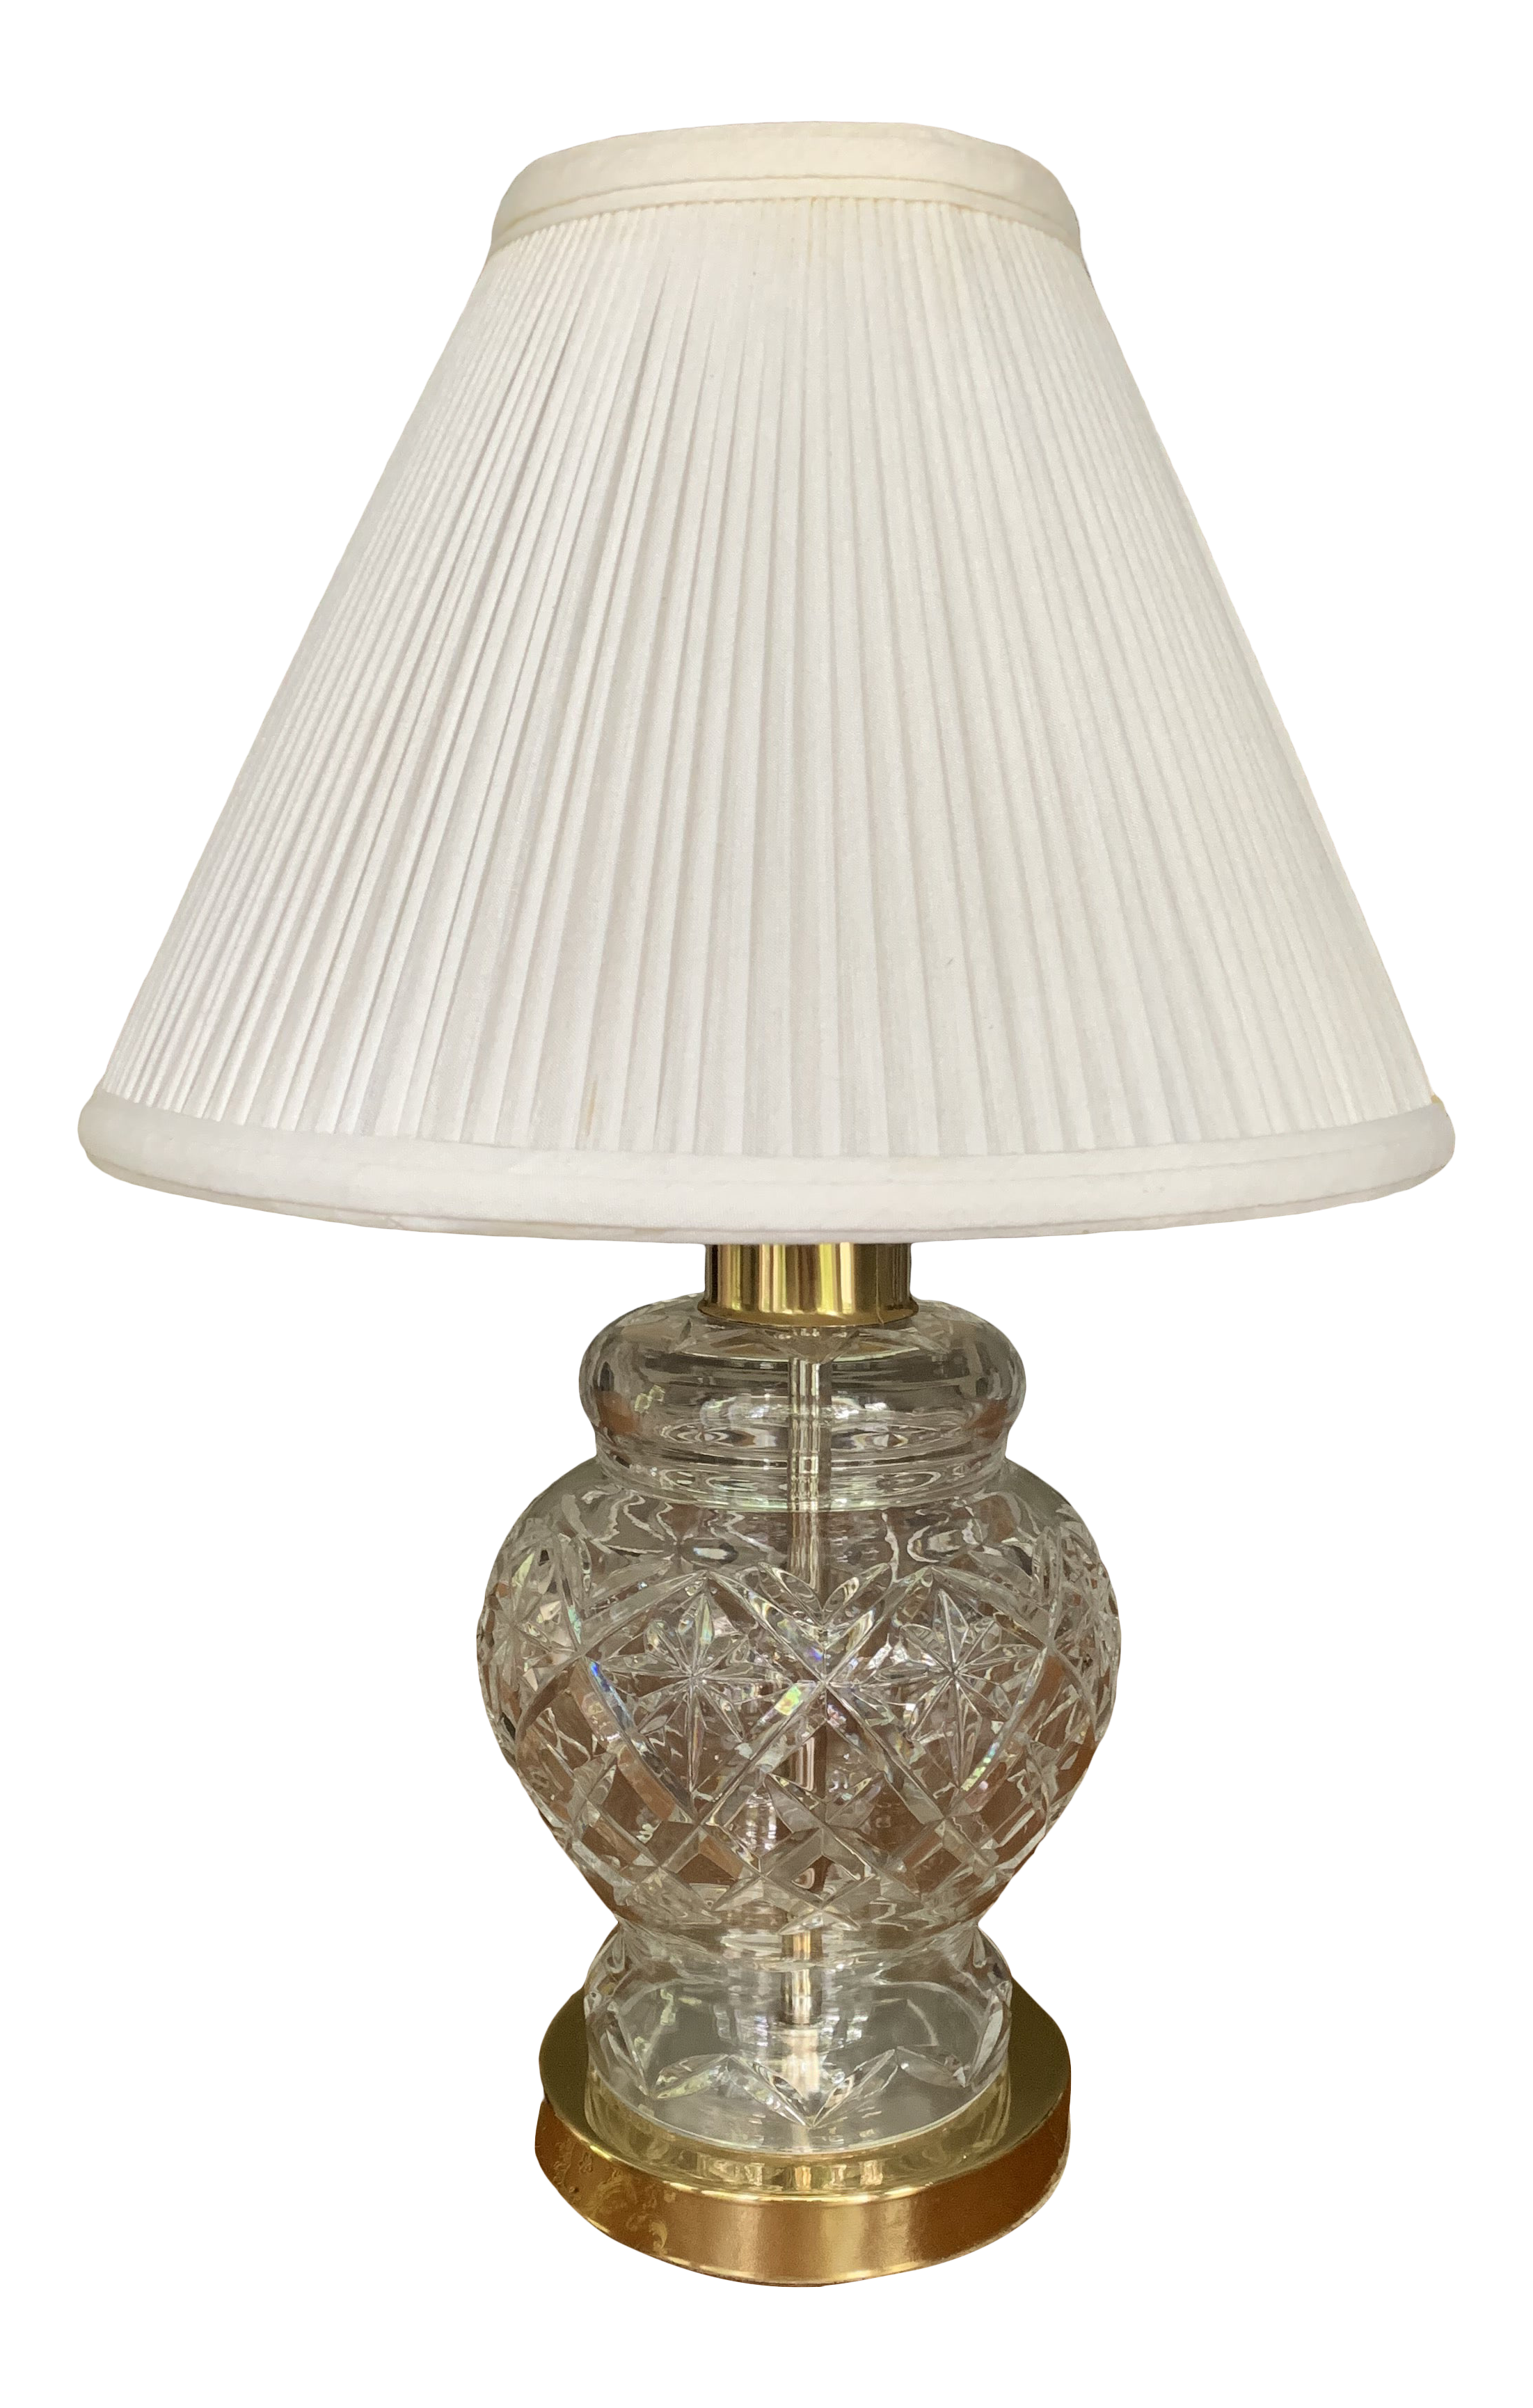 Vintage Waterford Crystal Lamp With, Waterford Crystal Table Lamp Shades